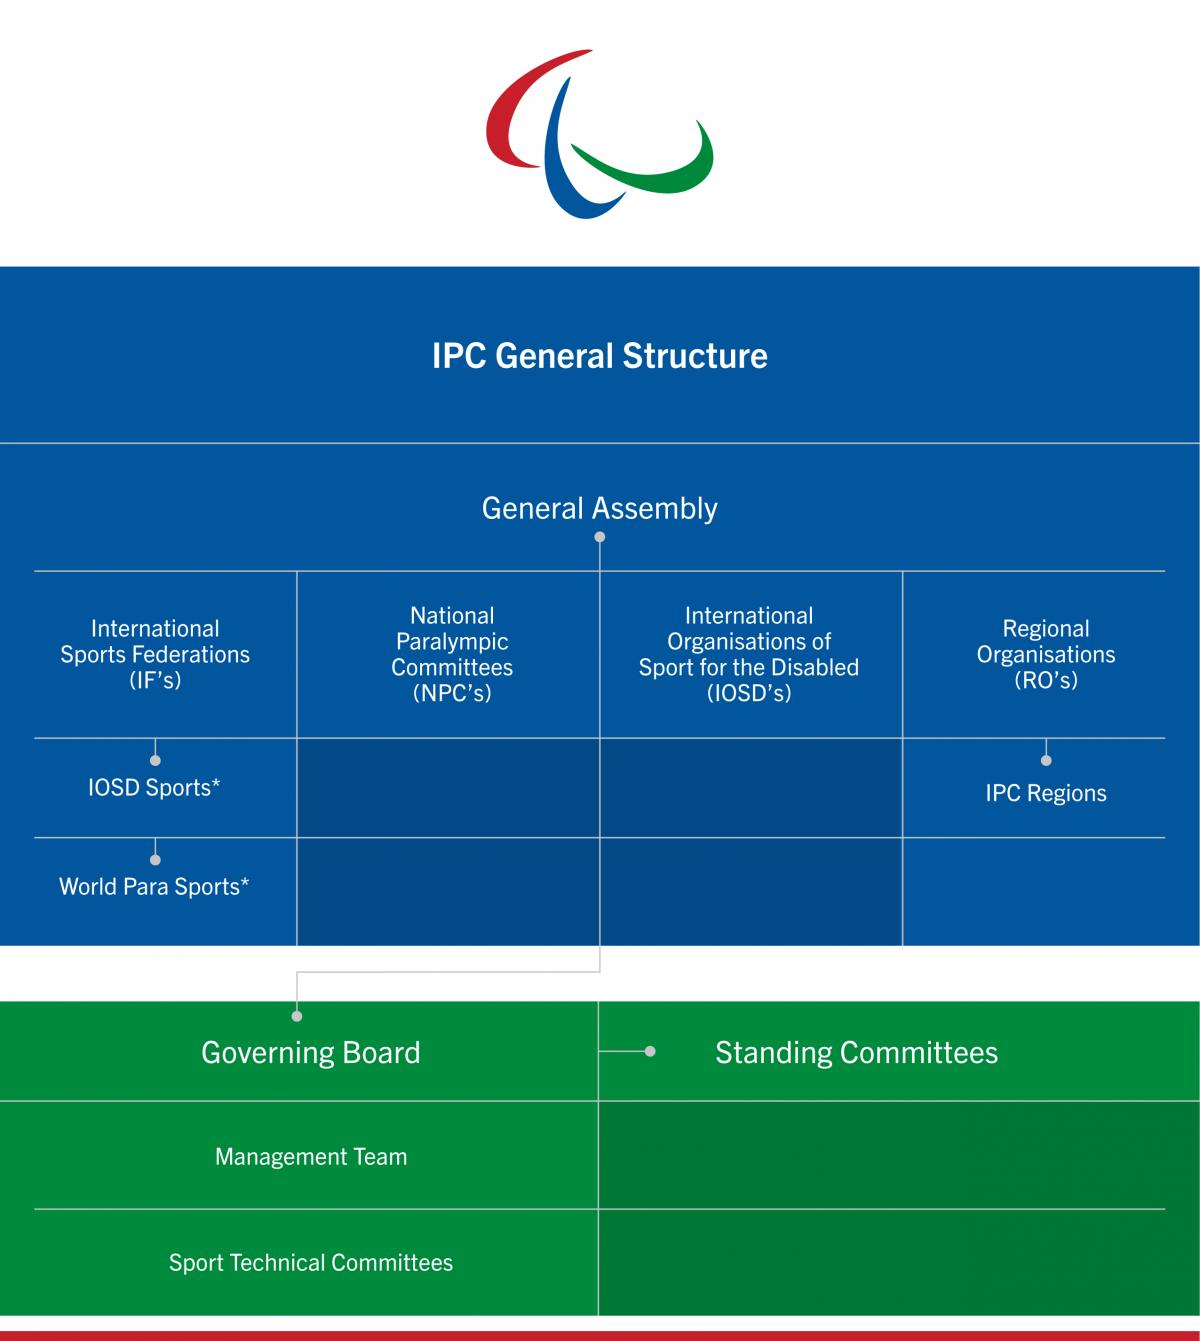 The structure of the IPC